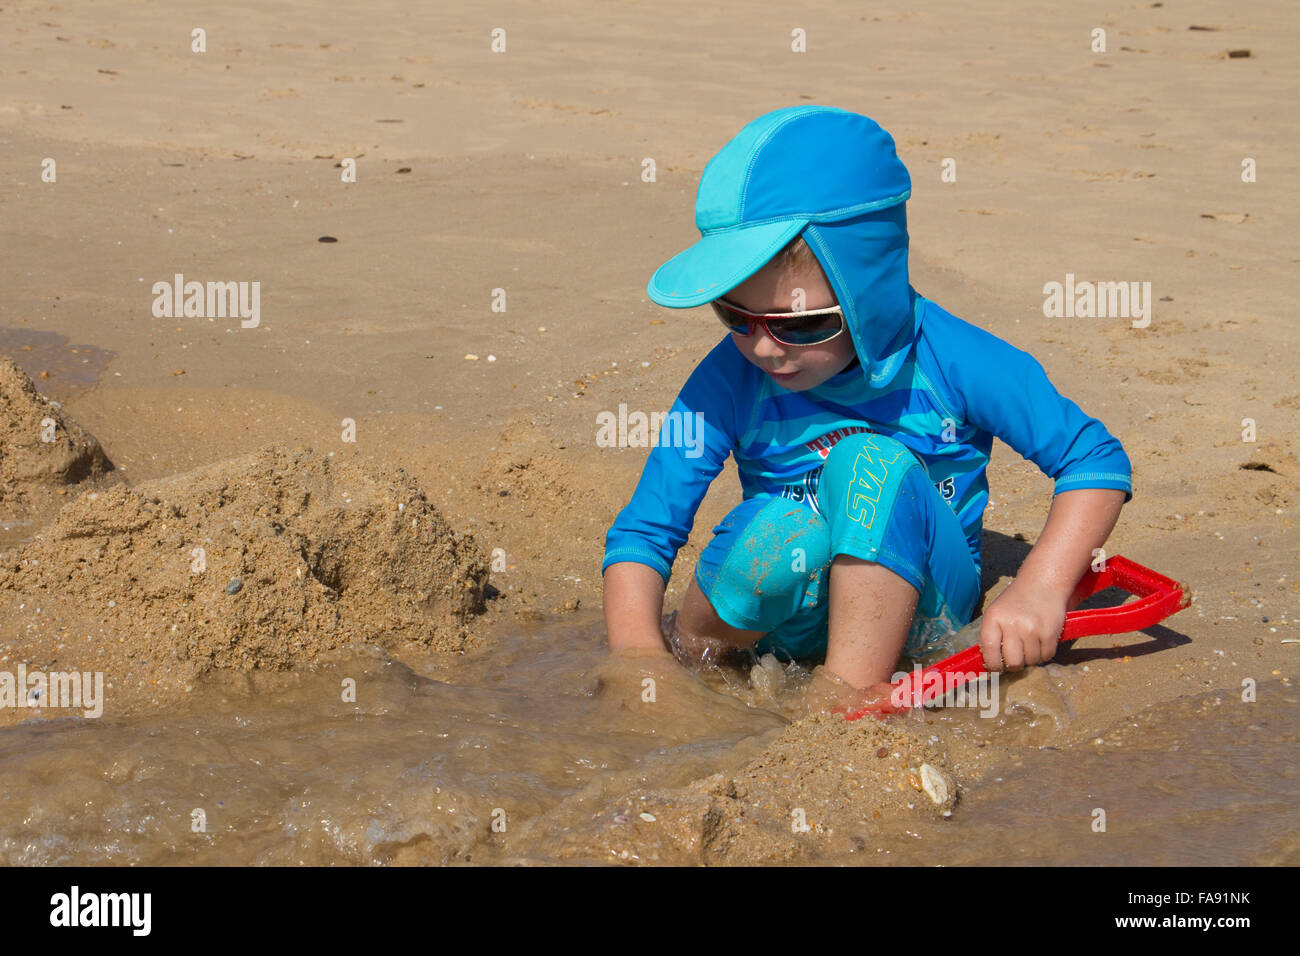 Boy playing on the beach at Praia De Santa Eulalia, near Albufeira, Algarve, Portugal Stock Photo